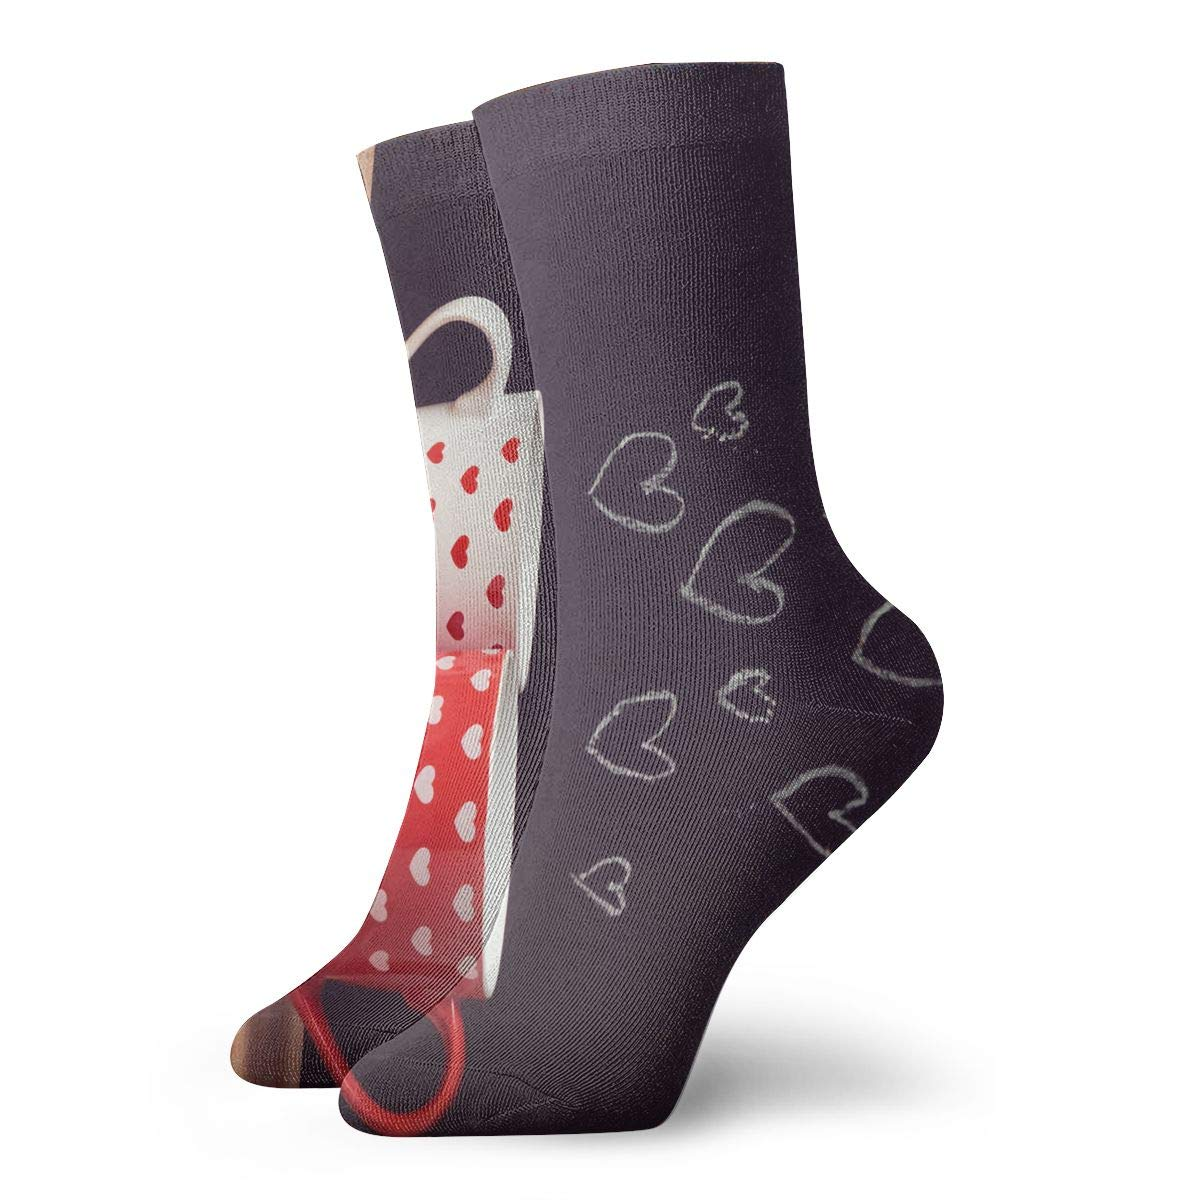 Valentines Day Concept And Heart And Cups Fashion Dress Socks Short Socks Leisure Travel 11.8 Inch